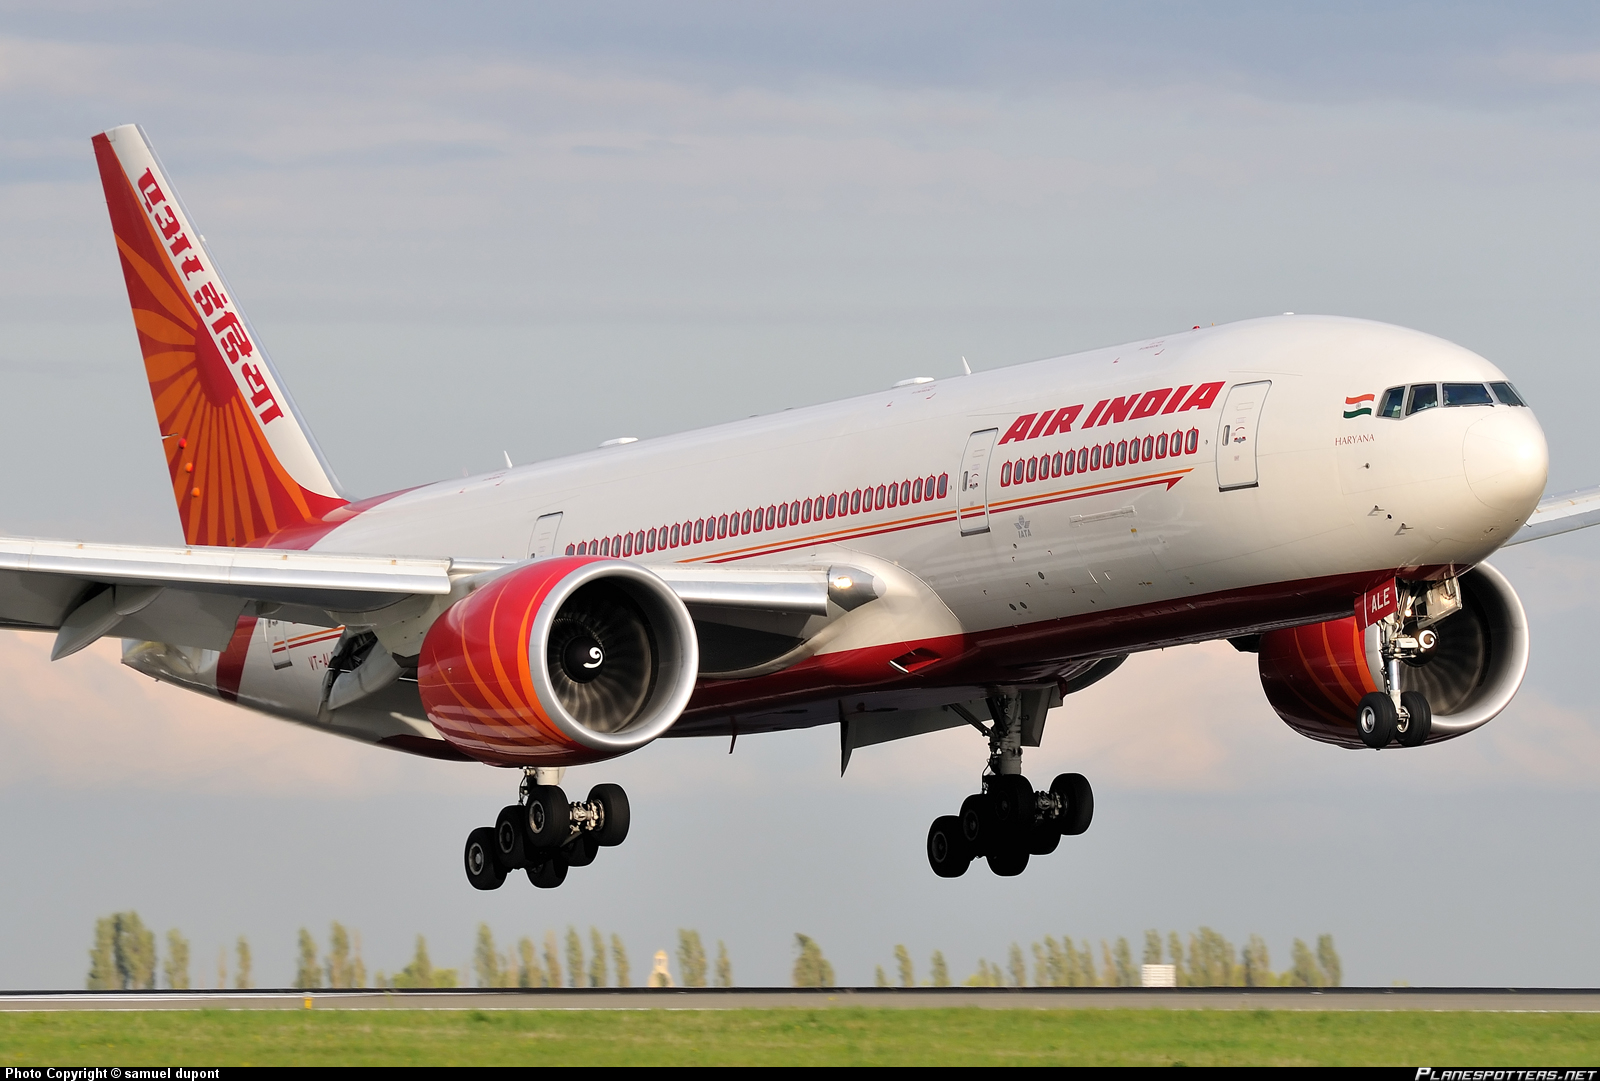 Move to Inbox More 10 of 7,384 Air India/Avianca code share implementation on LHR/BOG/LHR sector